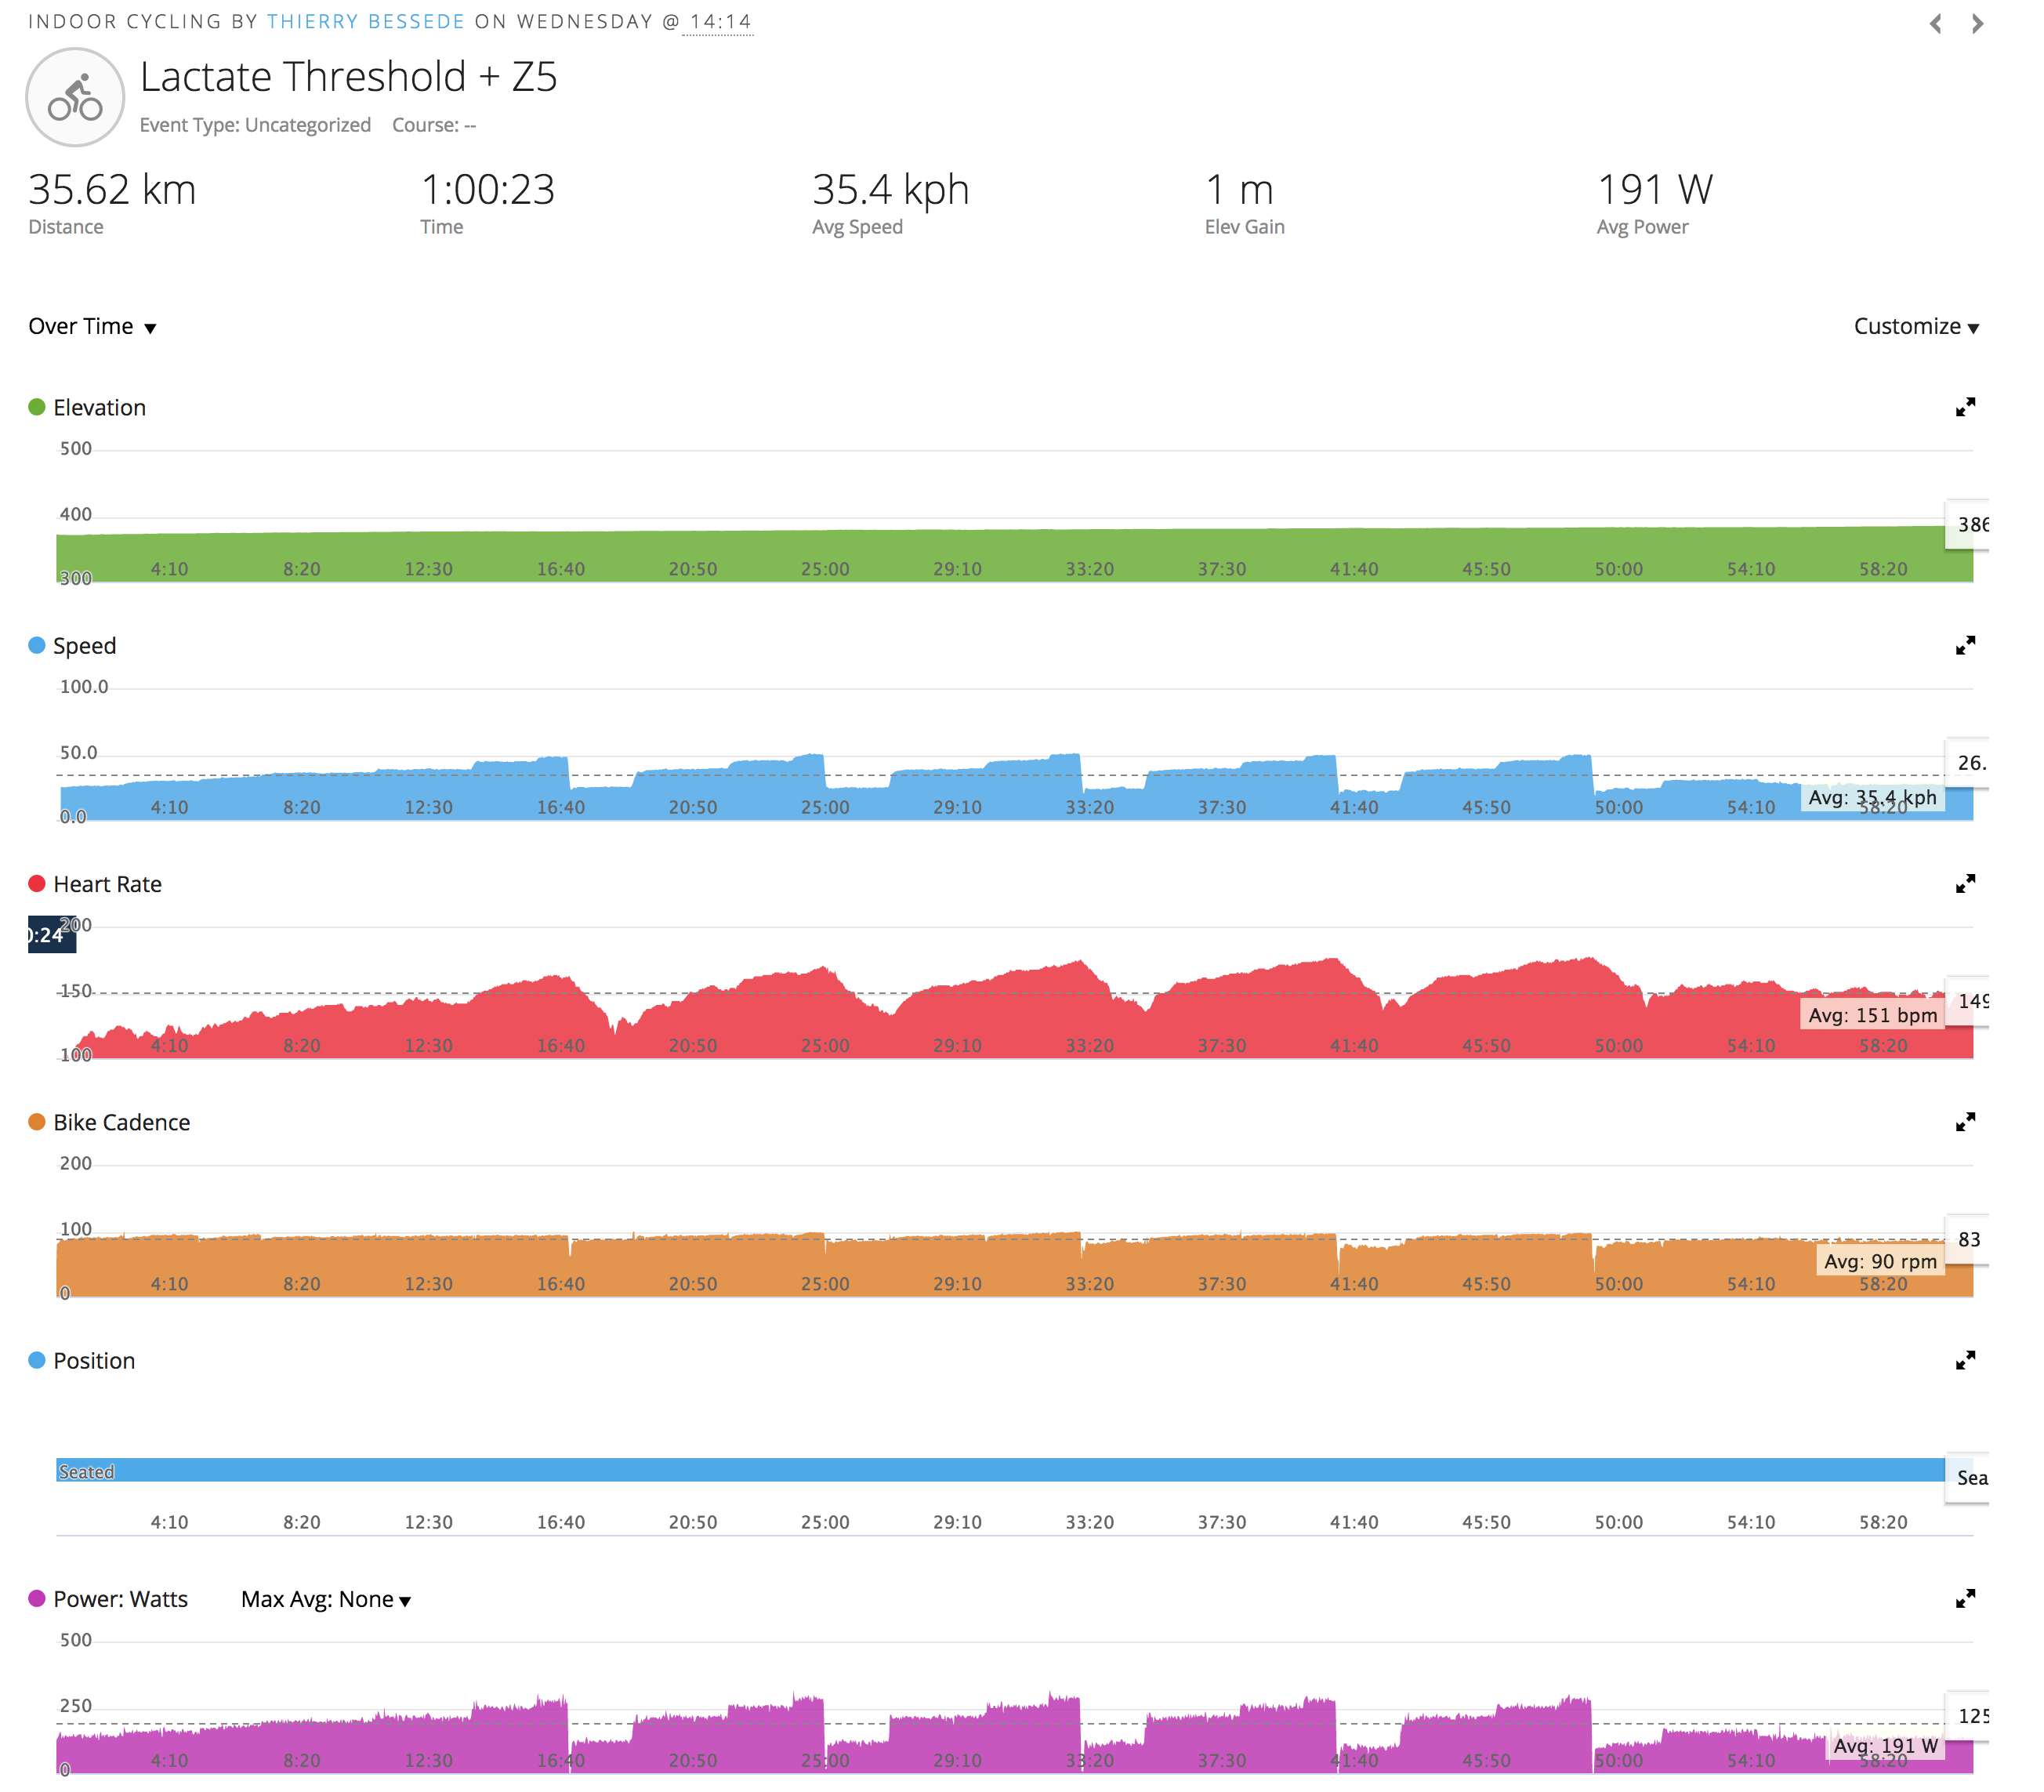 garmin indoor training data